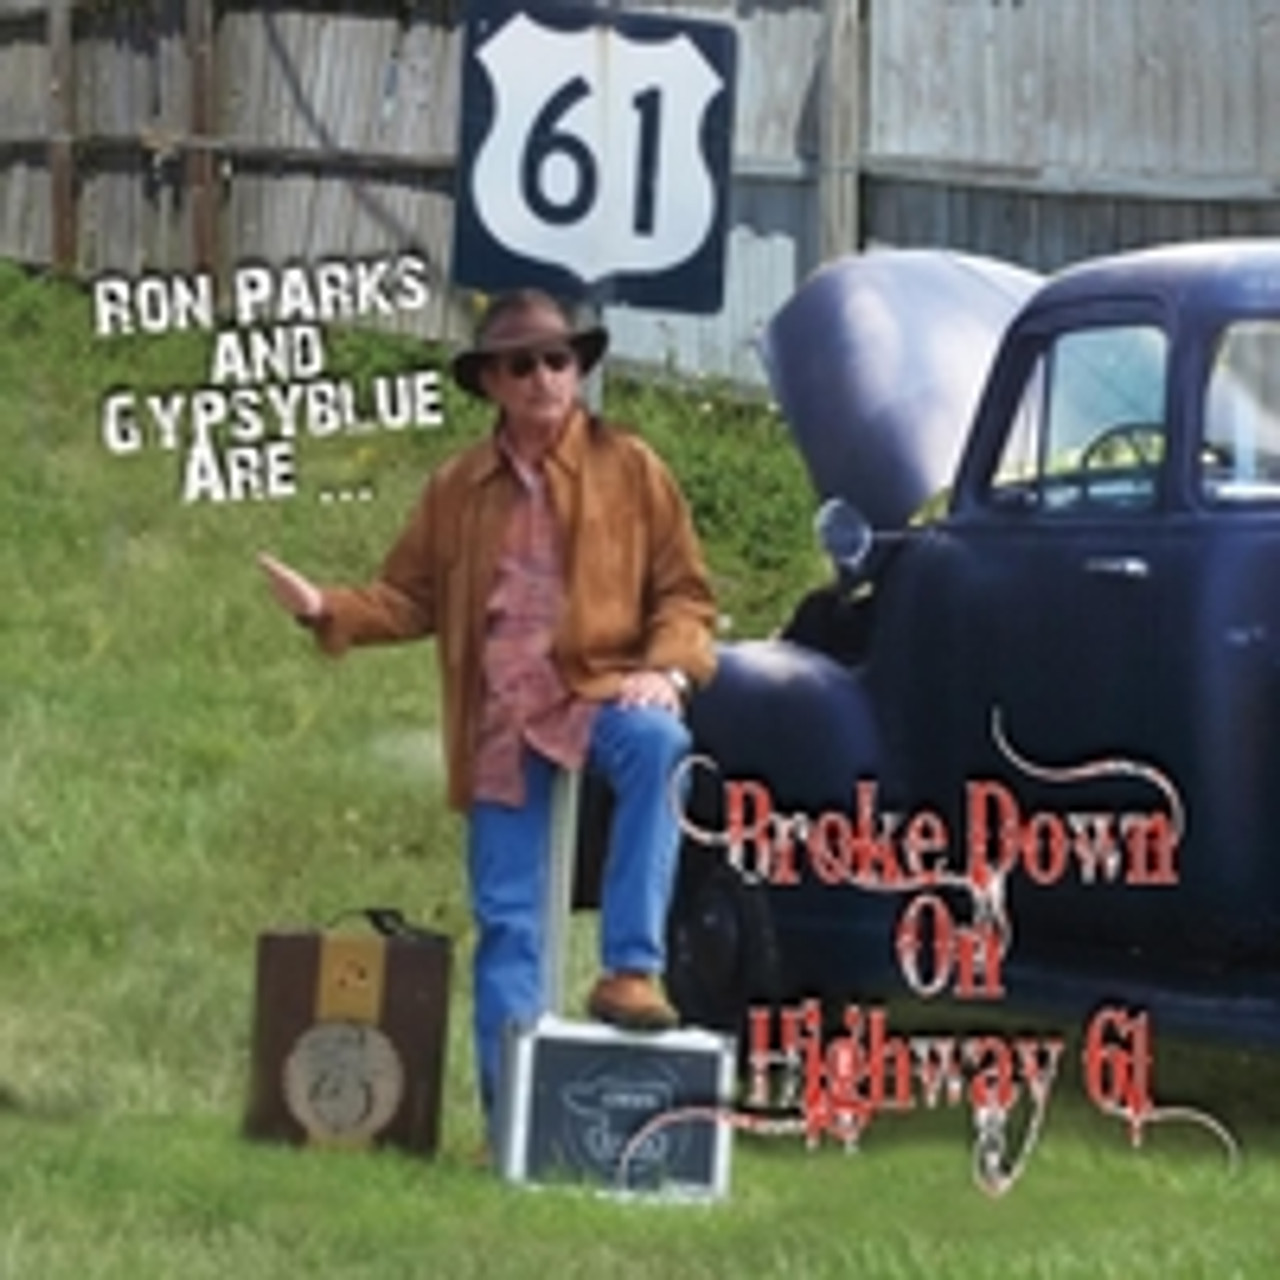 RON PARKS - BROKE DOWN ON HWY 61